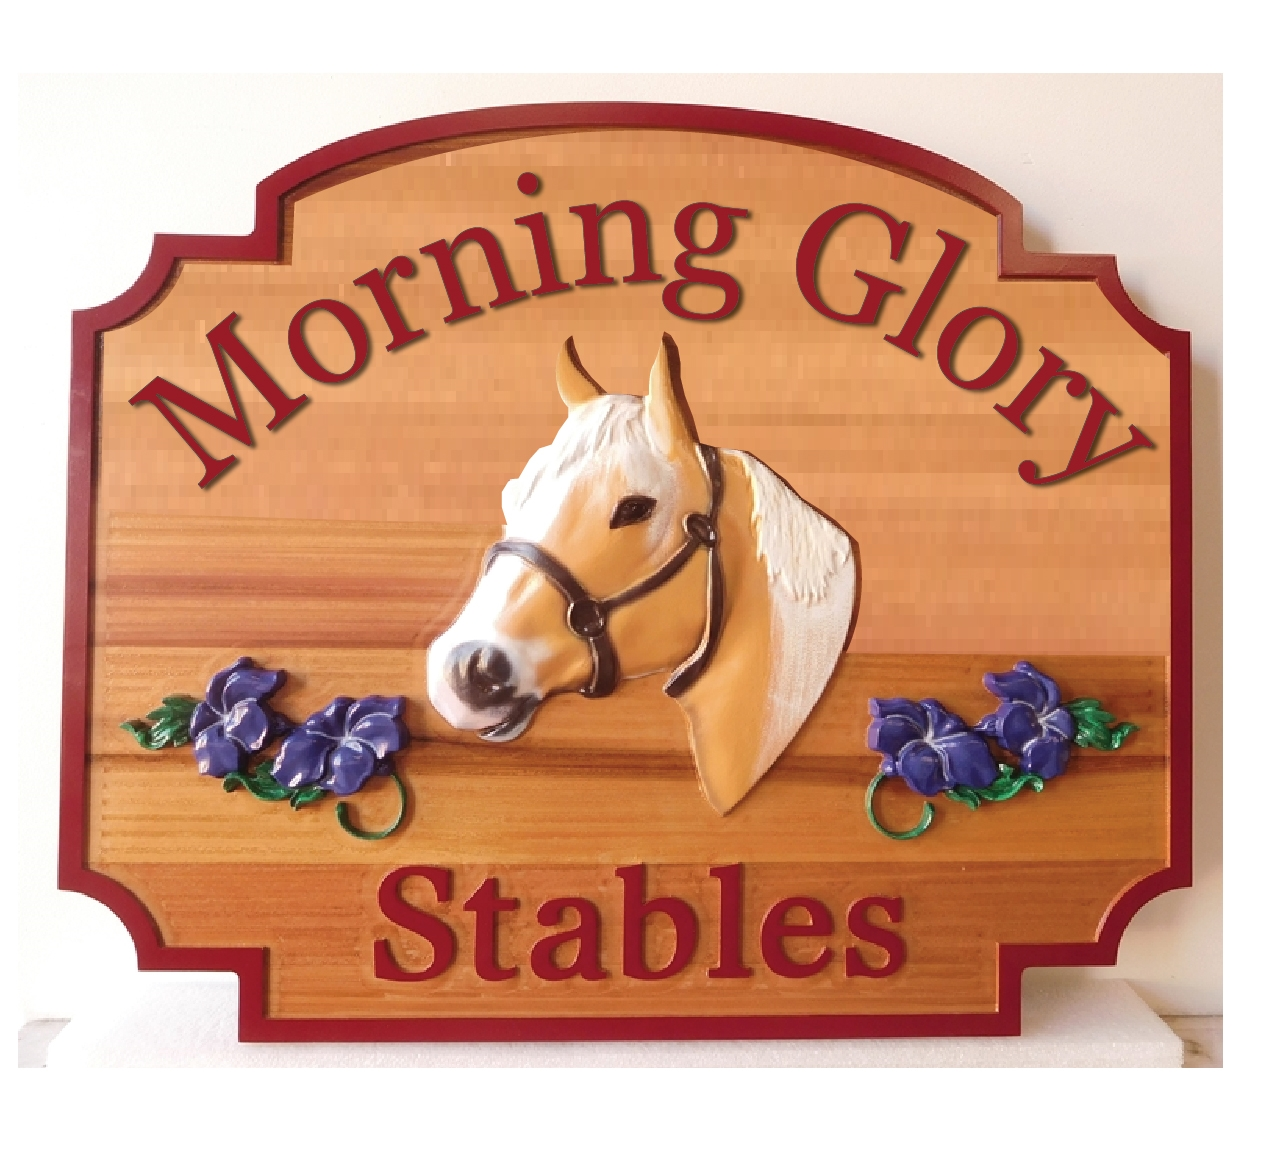 P25050 - Carved Cedar Wood Sign for Horse Stable